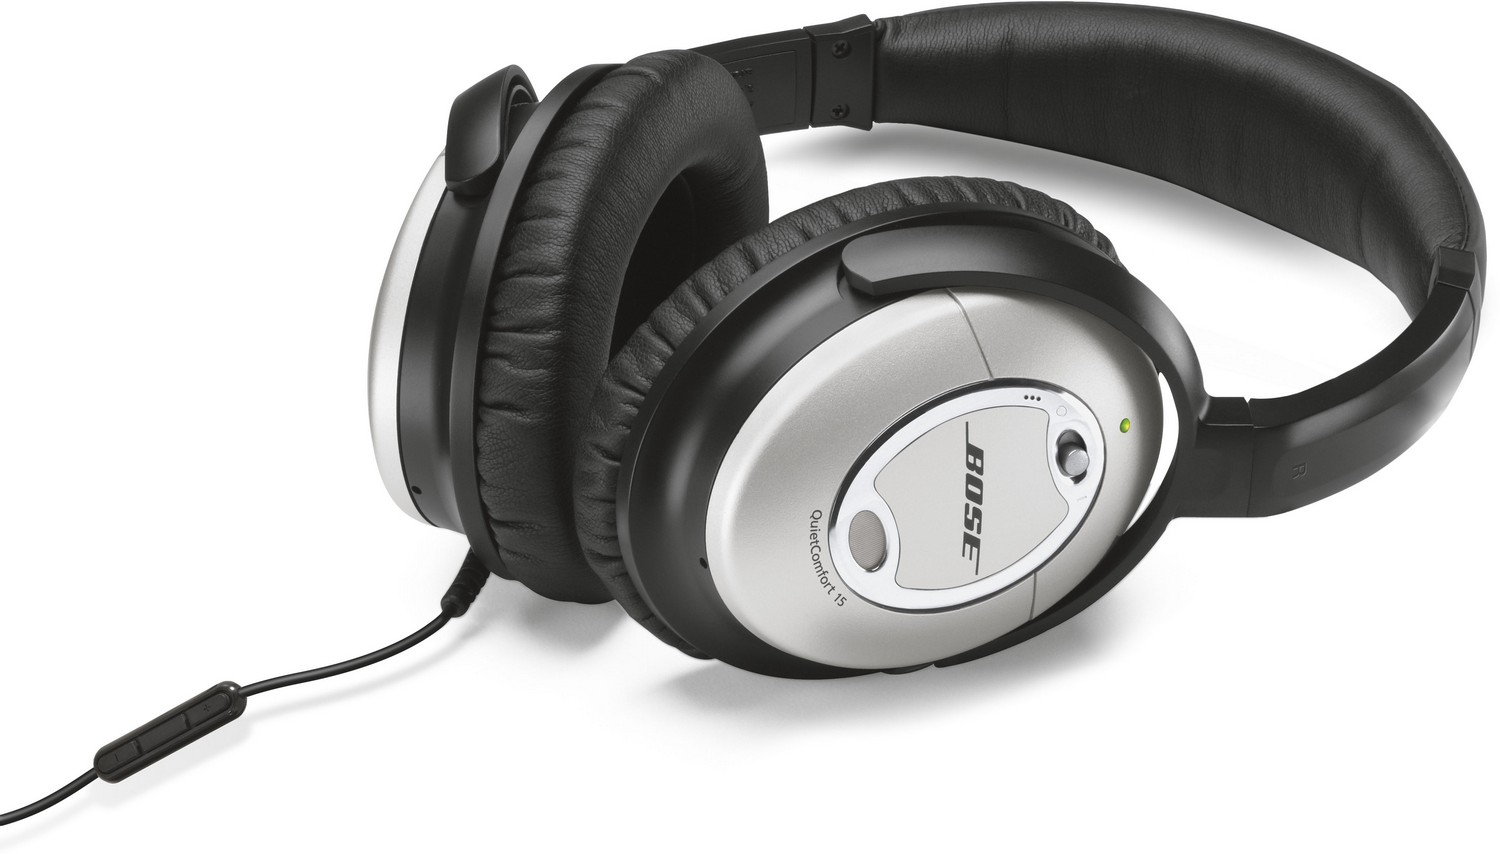 Bose QuietComfort 15 Noise Cancelling Headphones Earphones New | eBay